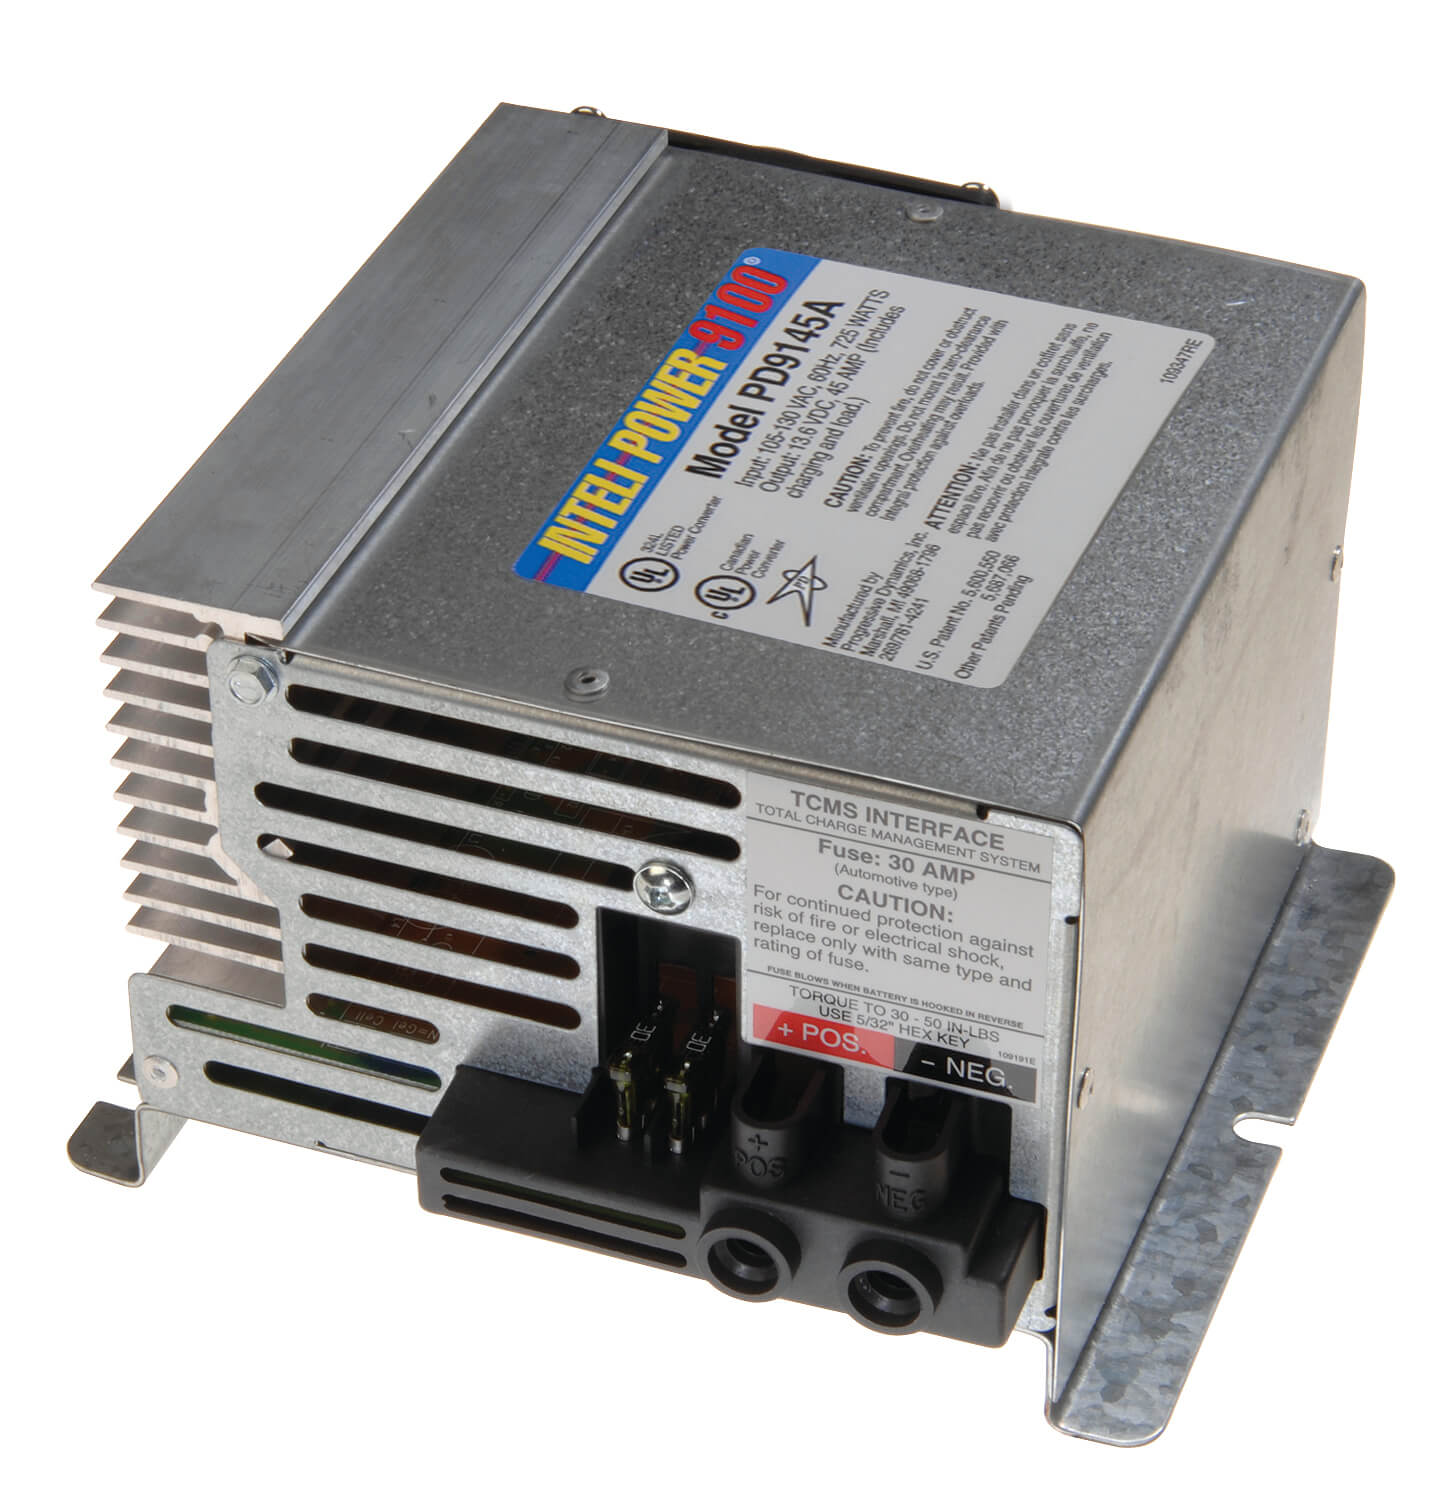 PD9100 Series RV power converters.